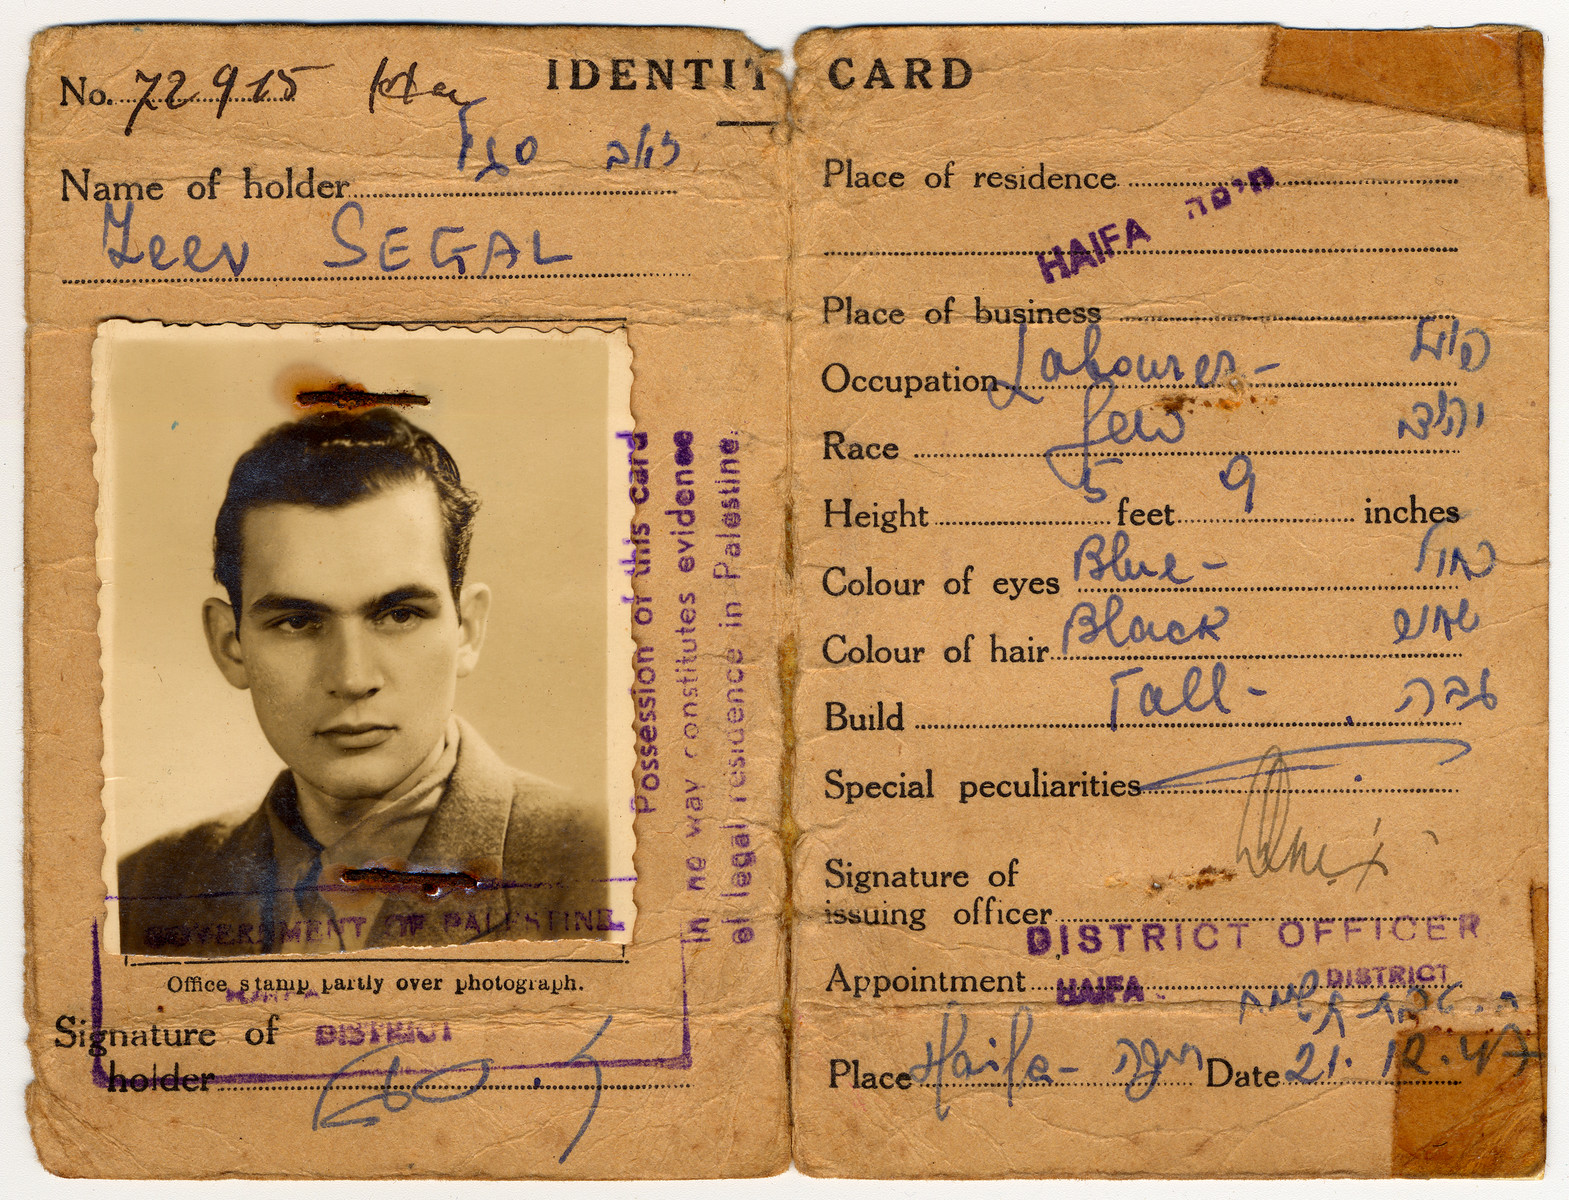 Government of Palestine identification card issued to Zev Segal. an American immigrant who had served as a crew member of the Exodus.